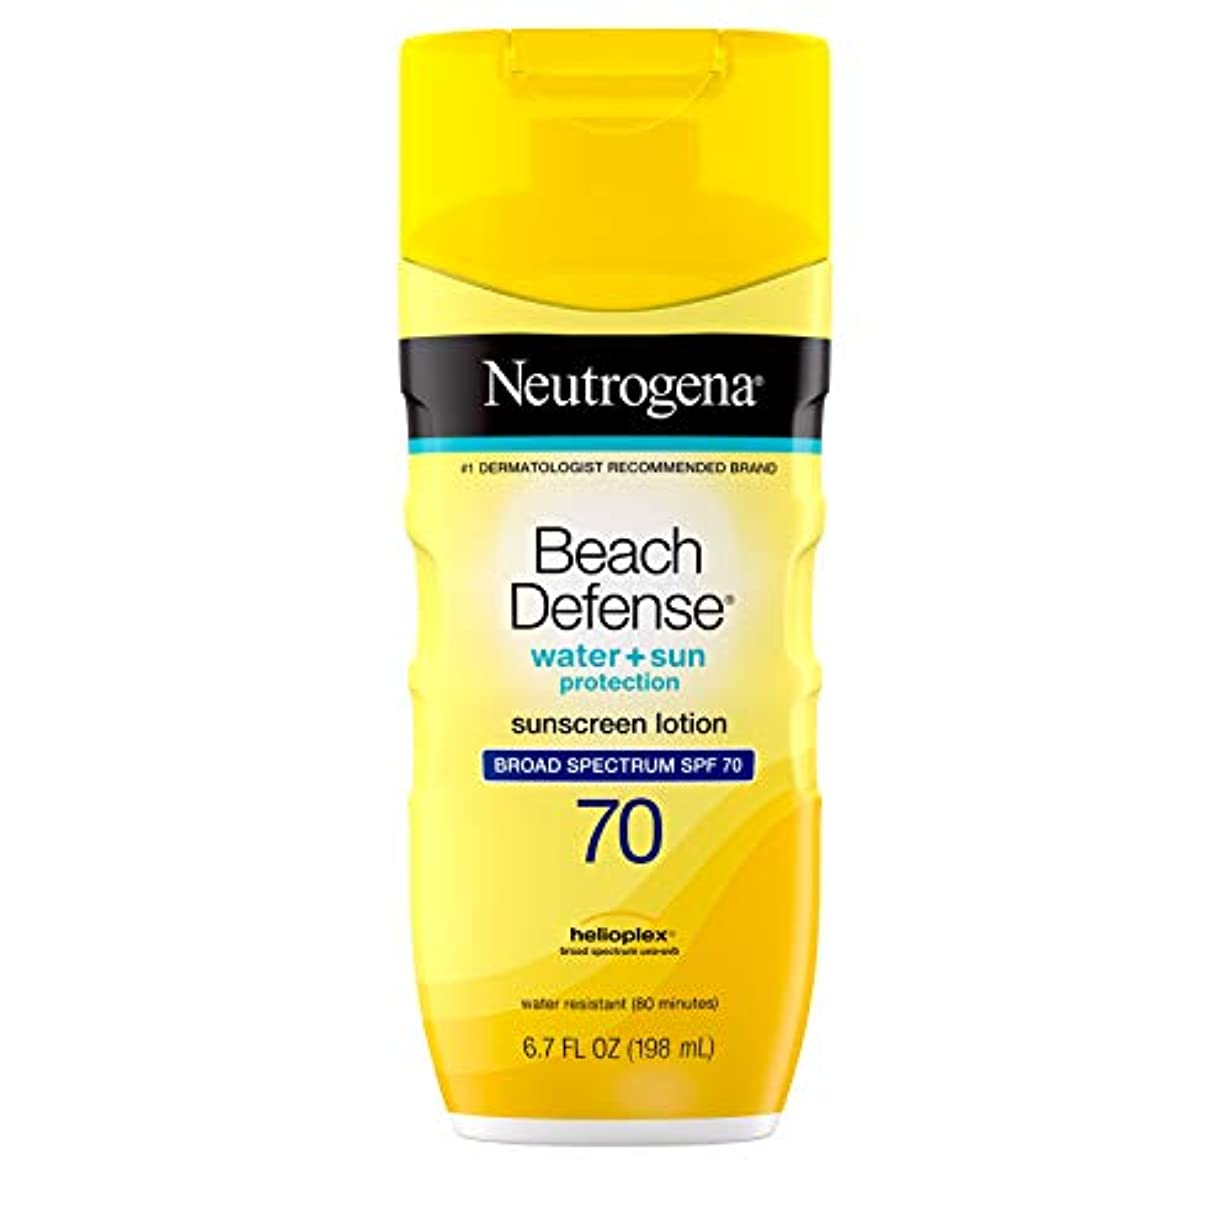 訴えるプーノ薄いです海外直送品Neutrogena Neutrogena Beach Defense Lotion SPF 70, 6.7 oz